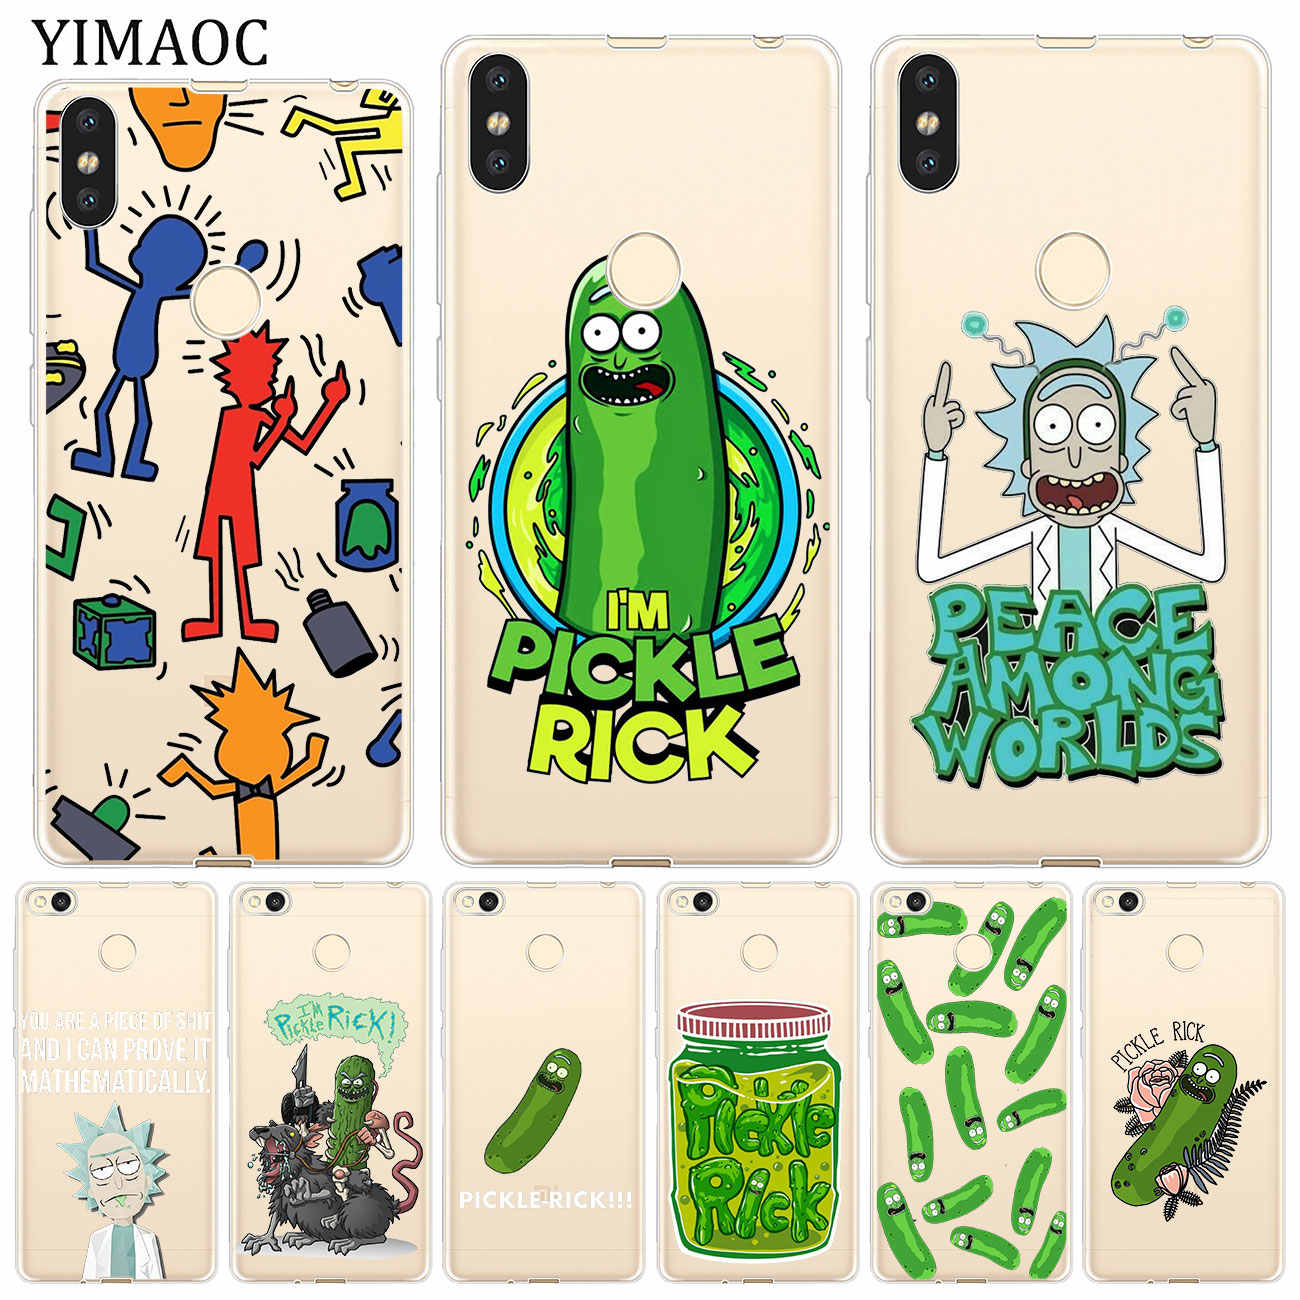 Мягкий чехол YIMAOC Rick and Morty pickle rick для Xiaomi mi 9 9T CC9 CC9E A3 Pro 8 SE A2 Lite A1 mi X 2S MAX 3 pocophone f1 mi 9 mi 8